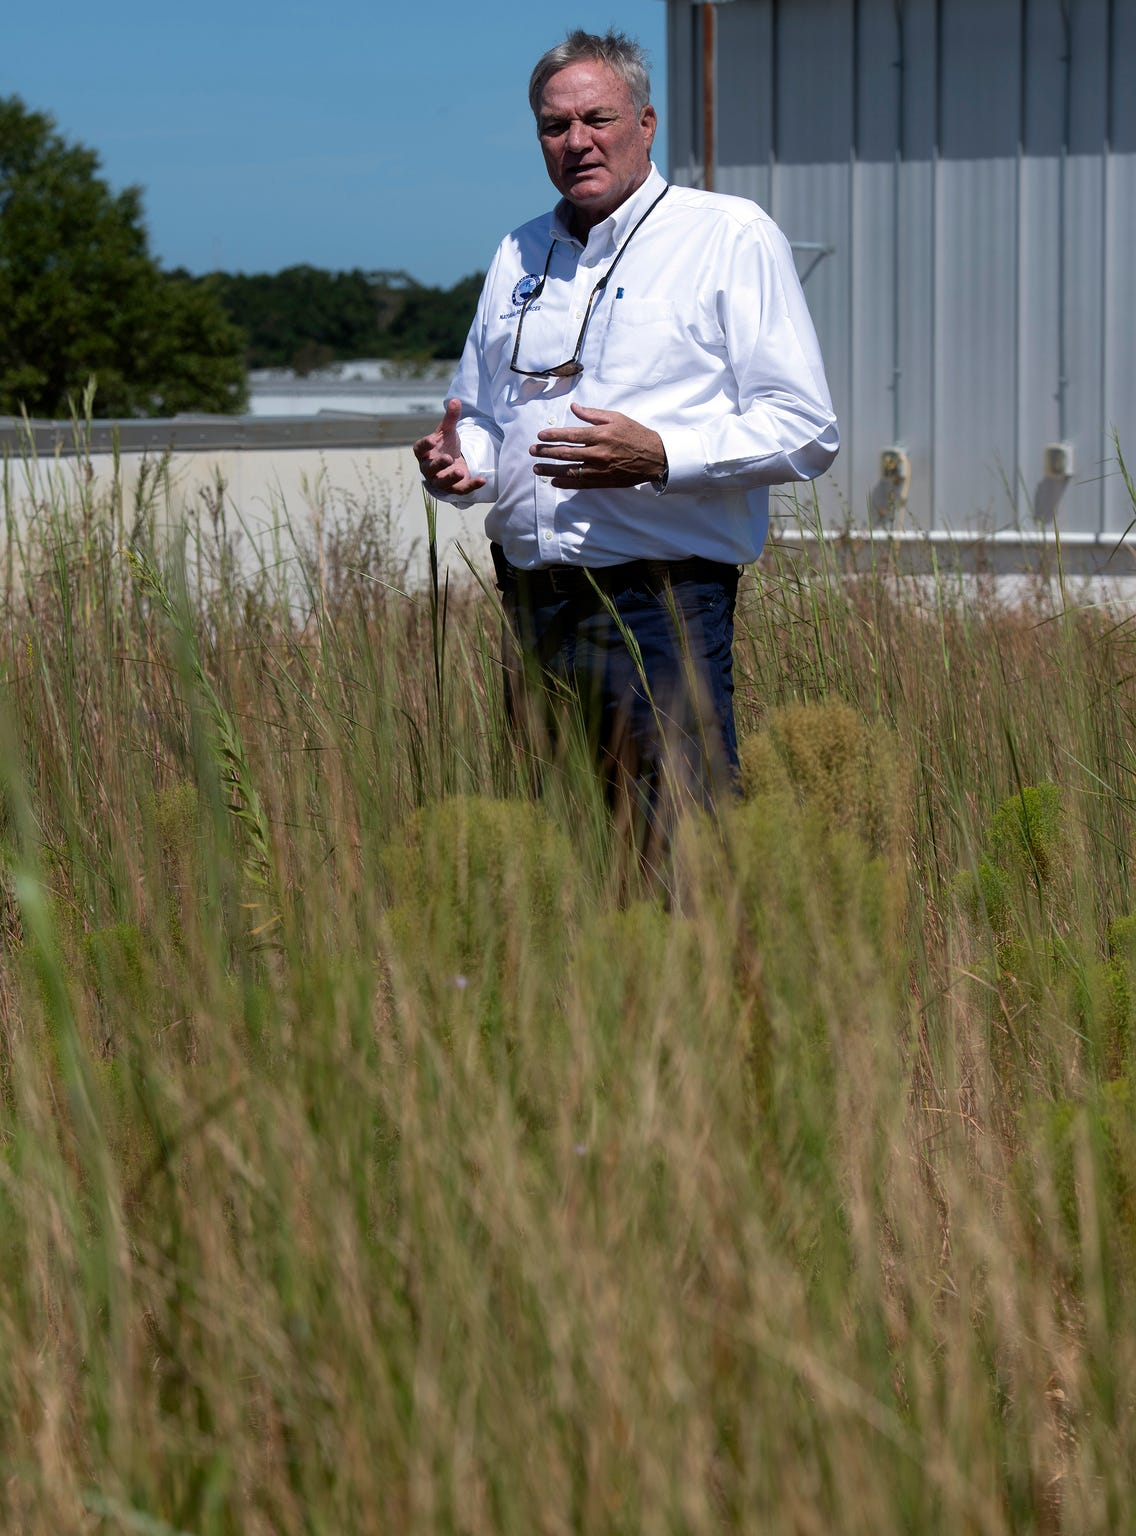 Escambia County Natural Resources Management Director Chips Kirschenfeld describes the advantages of having a green roof during a tour of the county central office complex off Fairfield Drive on Friday, Sept 20, 2019.